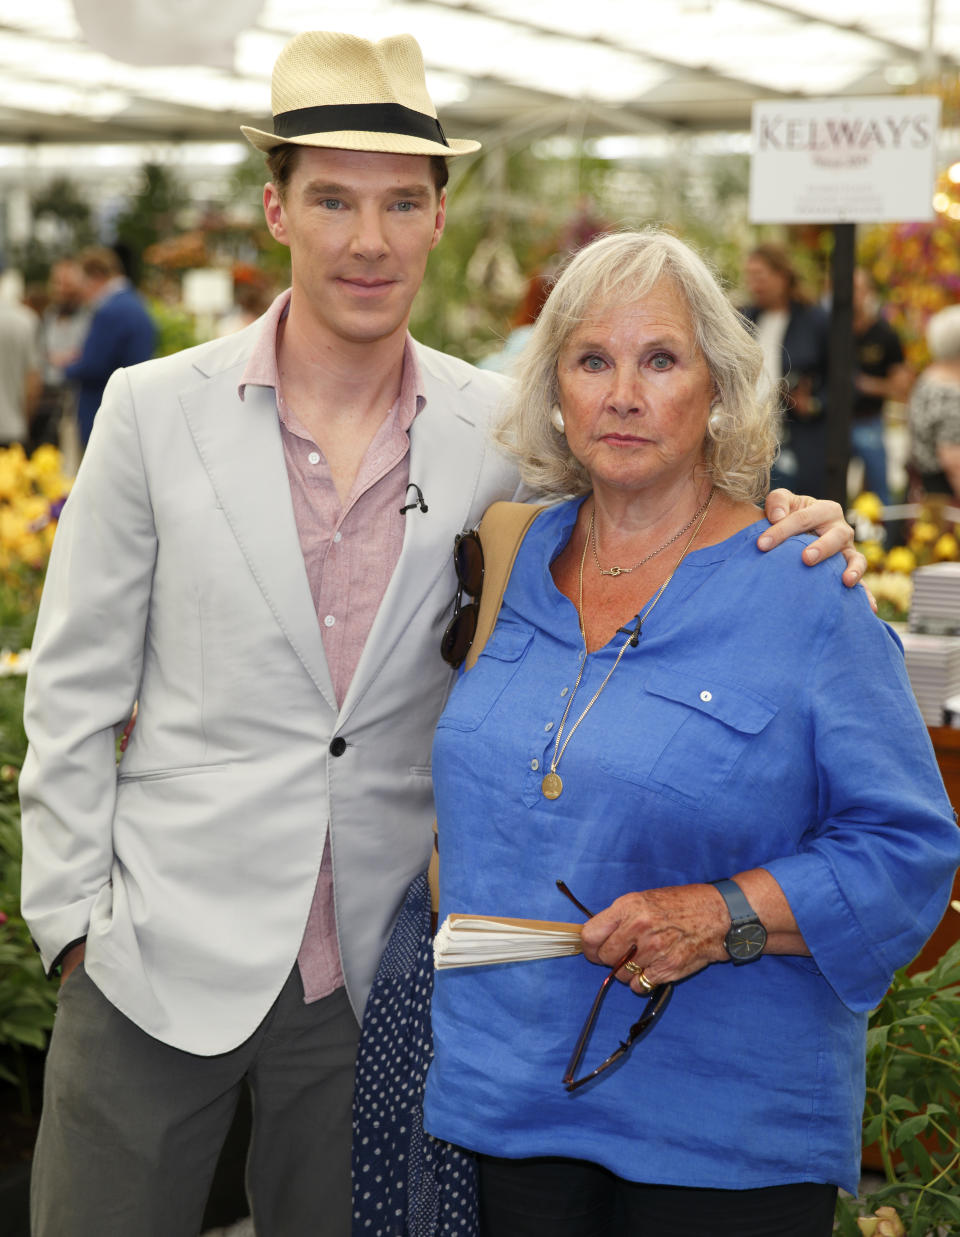 LONDON, UNITED KINGDOM - MAY 19: (EMBARGOED FOR PUBLICATION IN UK NEWSPAPERS UNTIL 48 HOURS AFTER CREATE DATE AND TIME) Benedict Cumberbatch and his mother Wanda Ventham attend the VIP preview day of The Chelsea Flower Show at The Royal Hospital Chelsea on May 19, 2014 in London, England. (Photo by Max Mumby/Indigo/Getty Images)